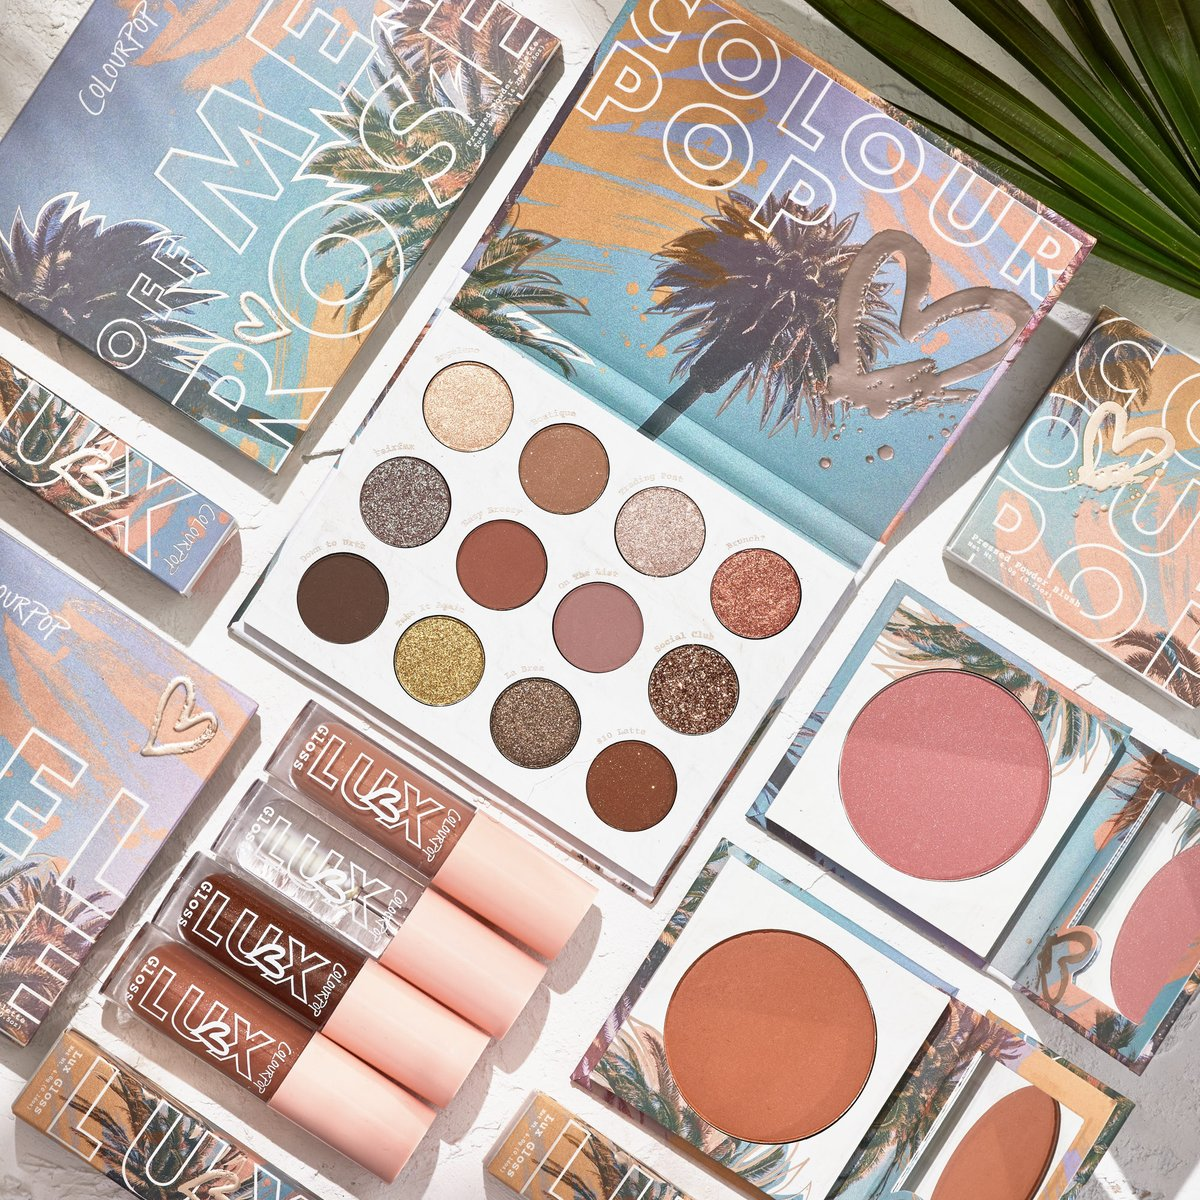 ☀️Sunshine and Palm Trees 🌴  Check our newest Melrose Collection available at @ultabeauty ✨